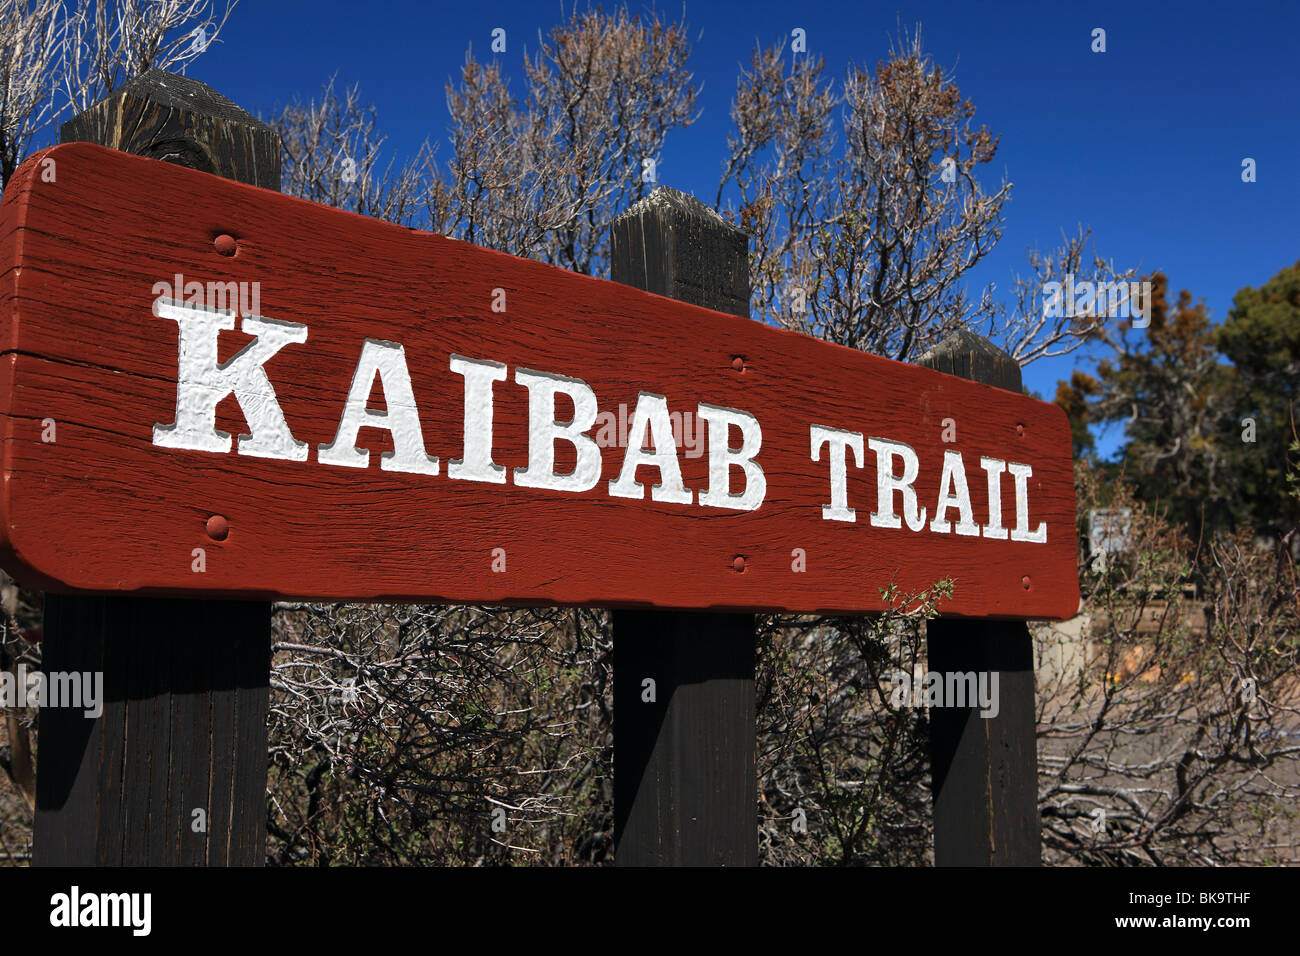 Sign at the start of the South Kaibab Trail at the South Rim of the Grand Canyon in Arizona - Stock Image